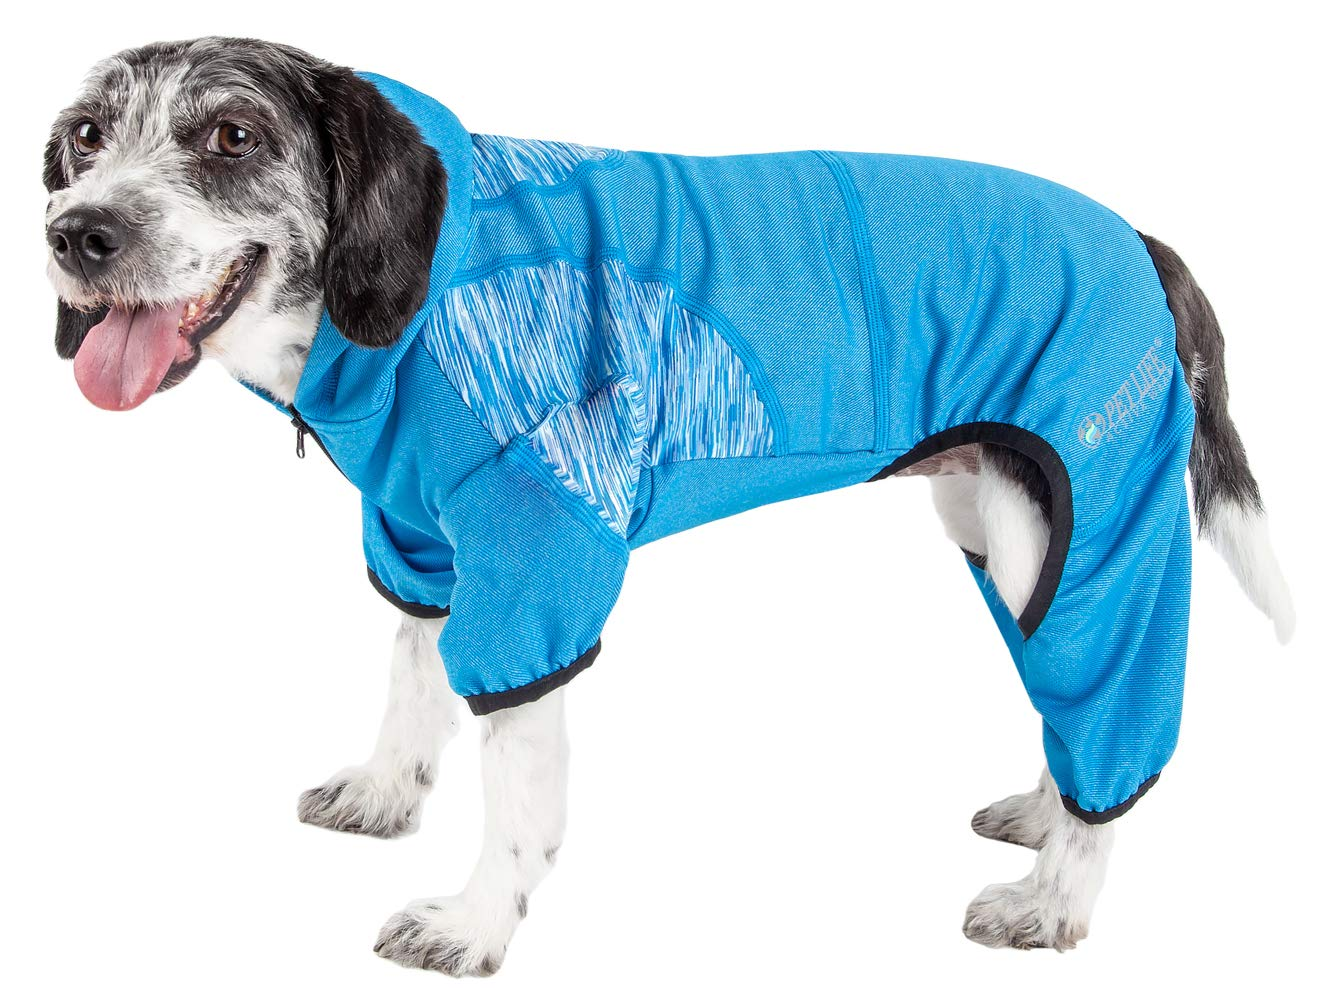 Pet Life Active 'Pawsterity' Heathered Performance 4-Way Stretch Two-Toned Full Bodied Hoodie, Large, Blue